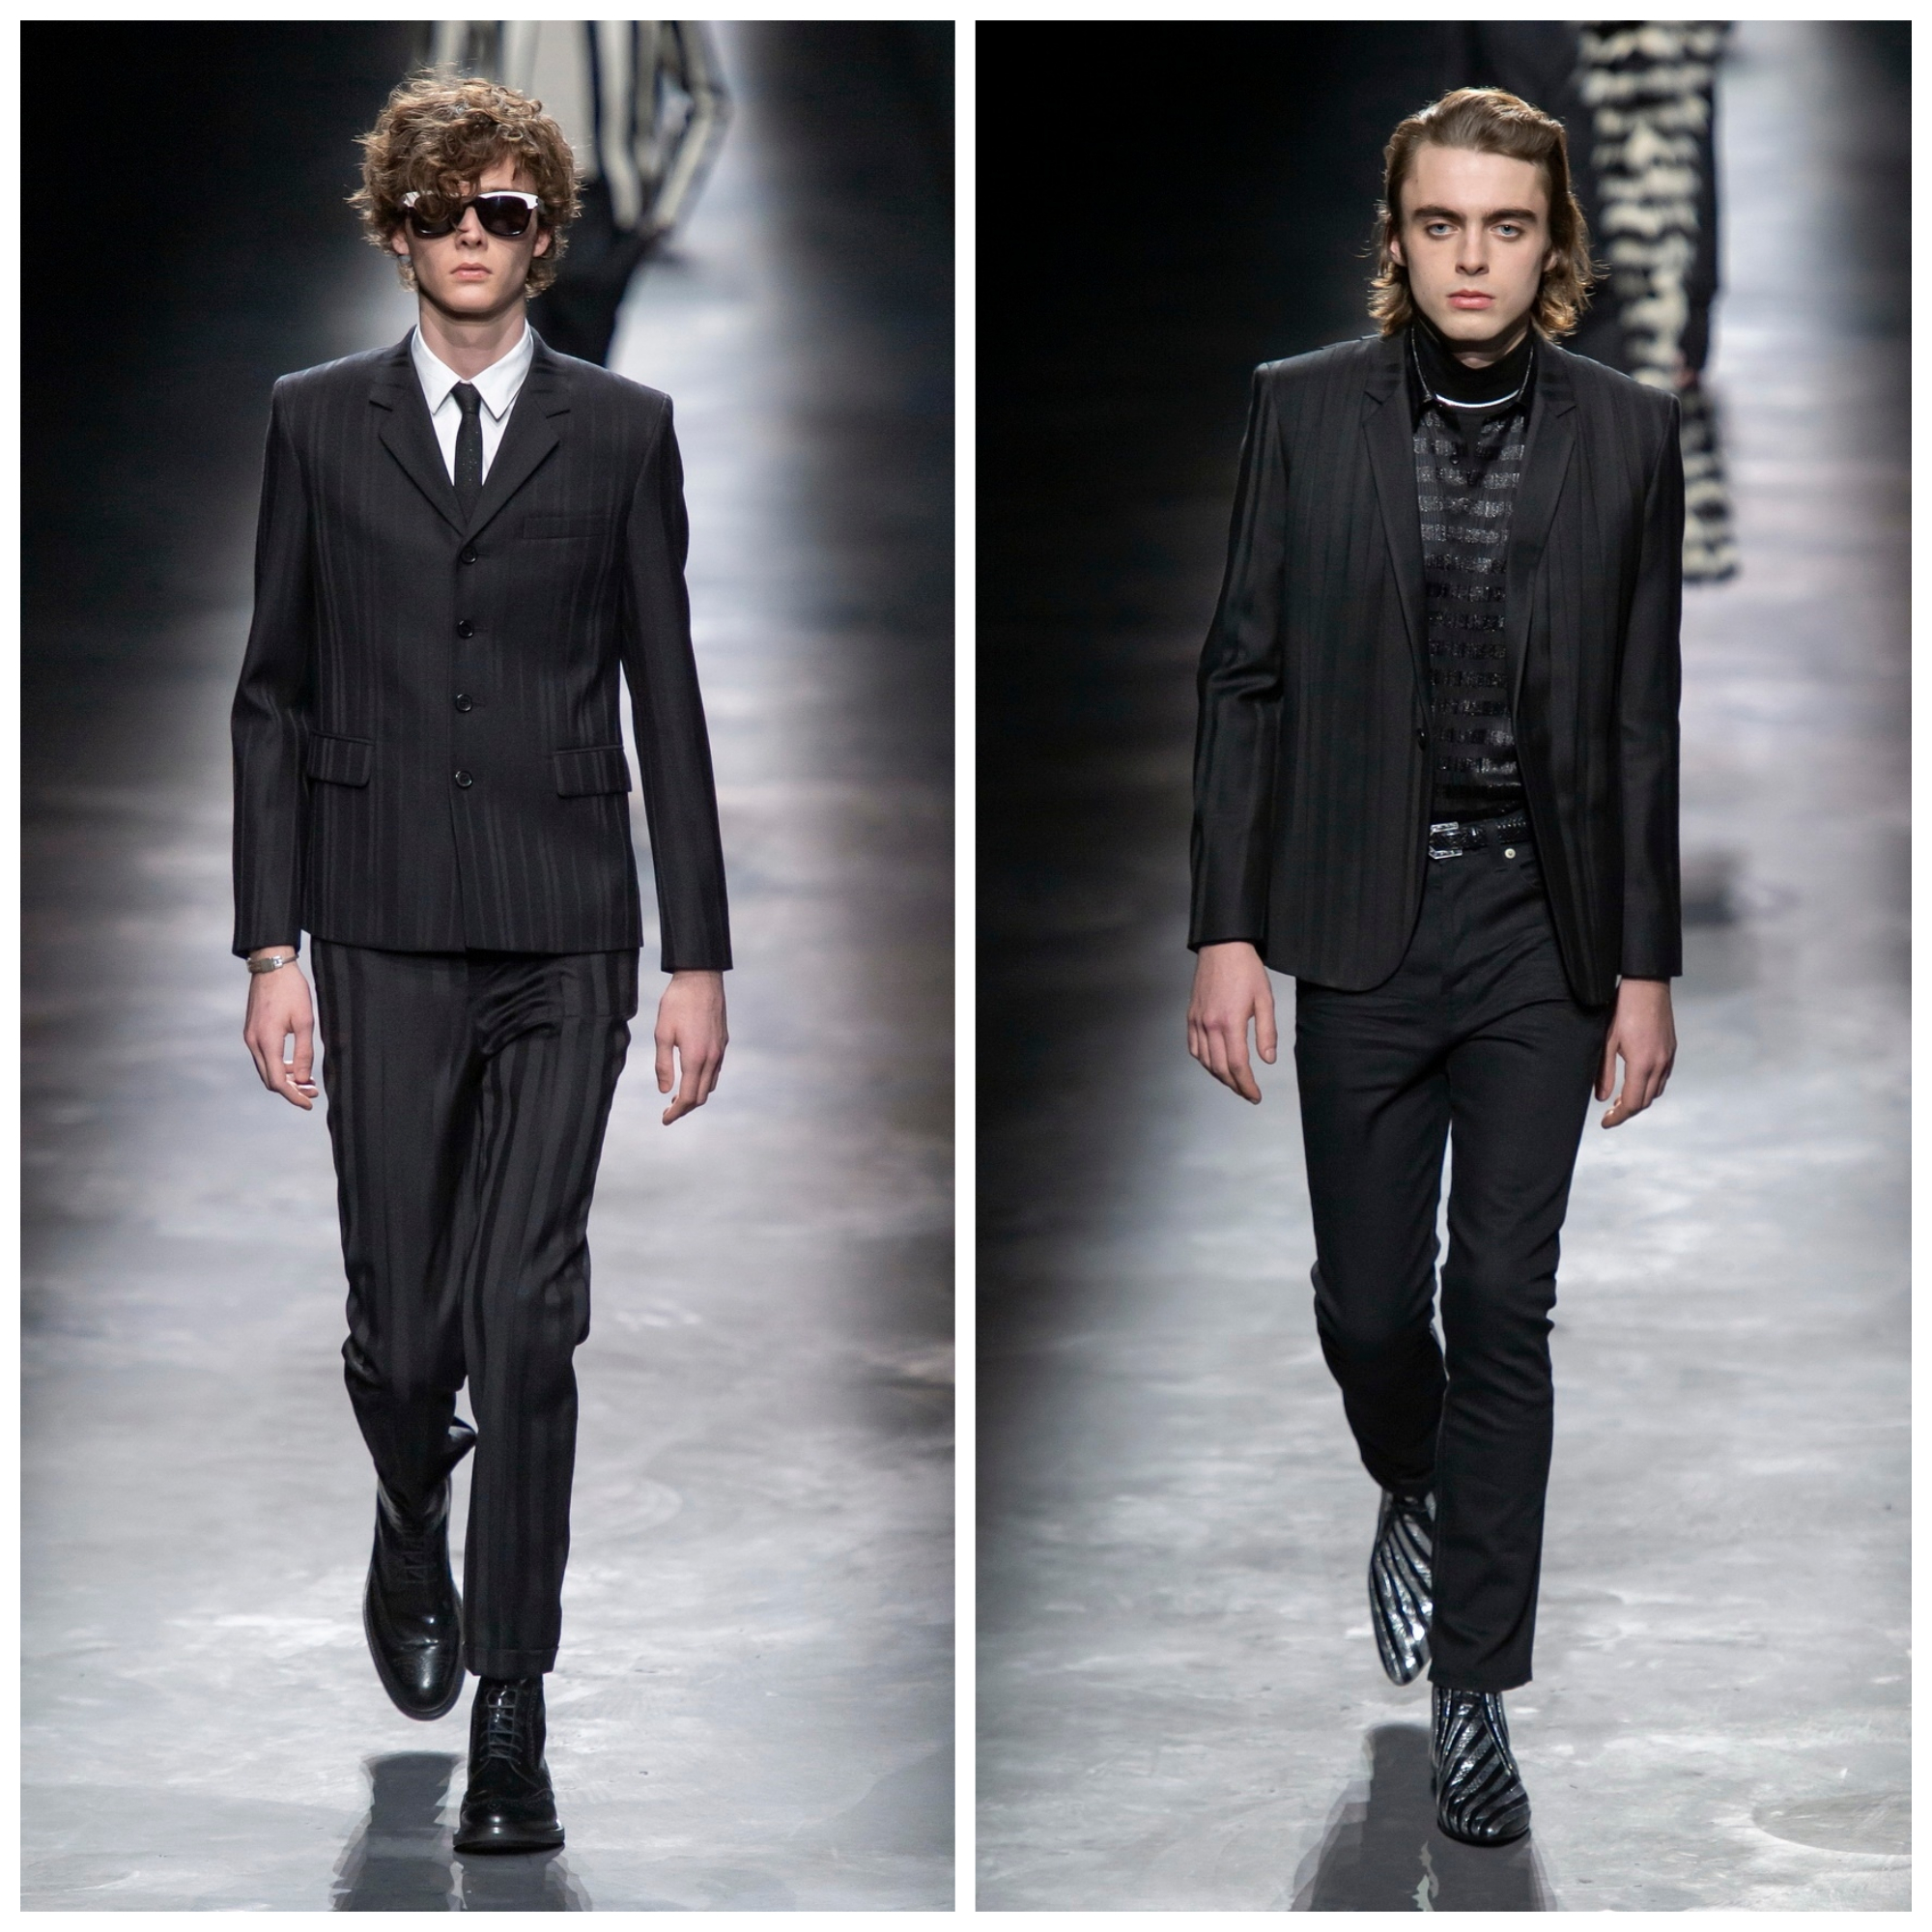 4de0e2129e5 As the big houses battle for fashion supremacy, last night at least, Paris  belonged to Saint Laurent. ysl